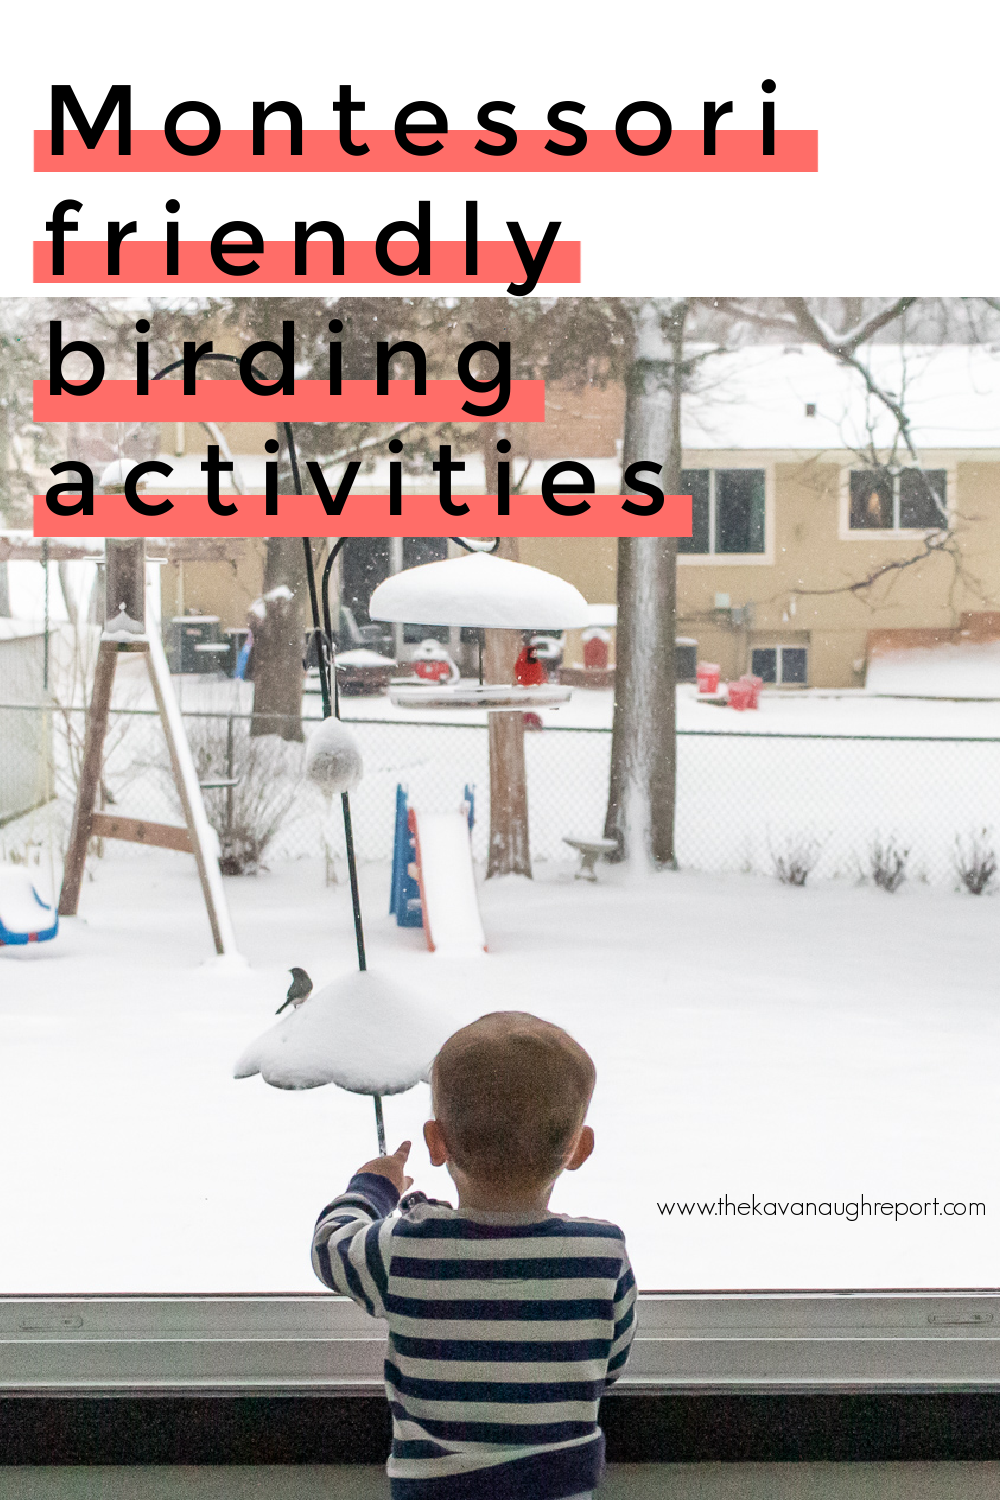 Easy, fun, low cost Montessori friendly birding activities that you can do from anywhere. These activities work for a variety of ages and interests.